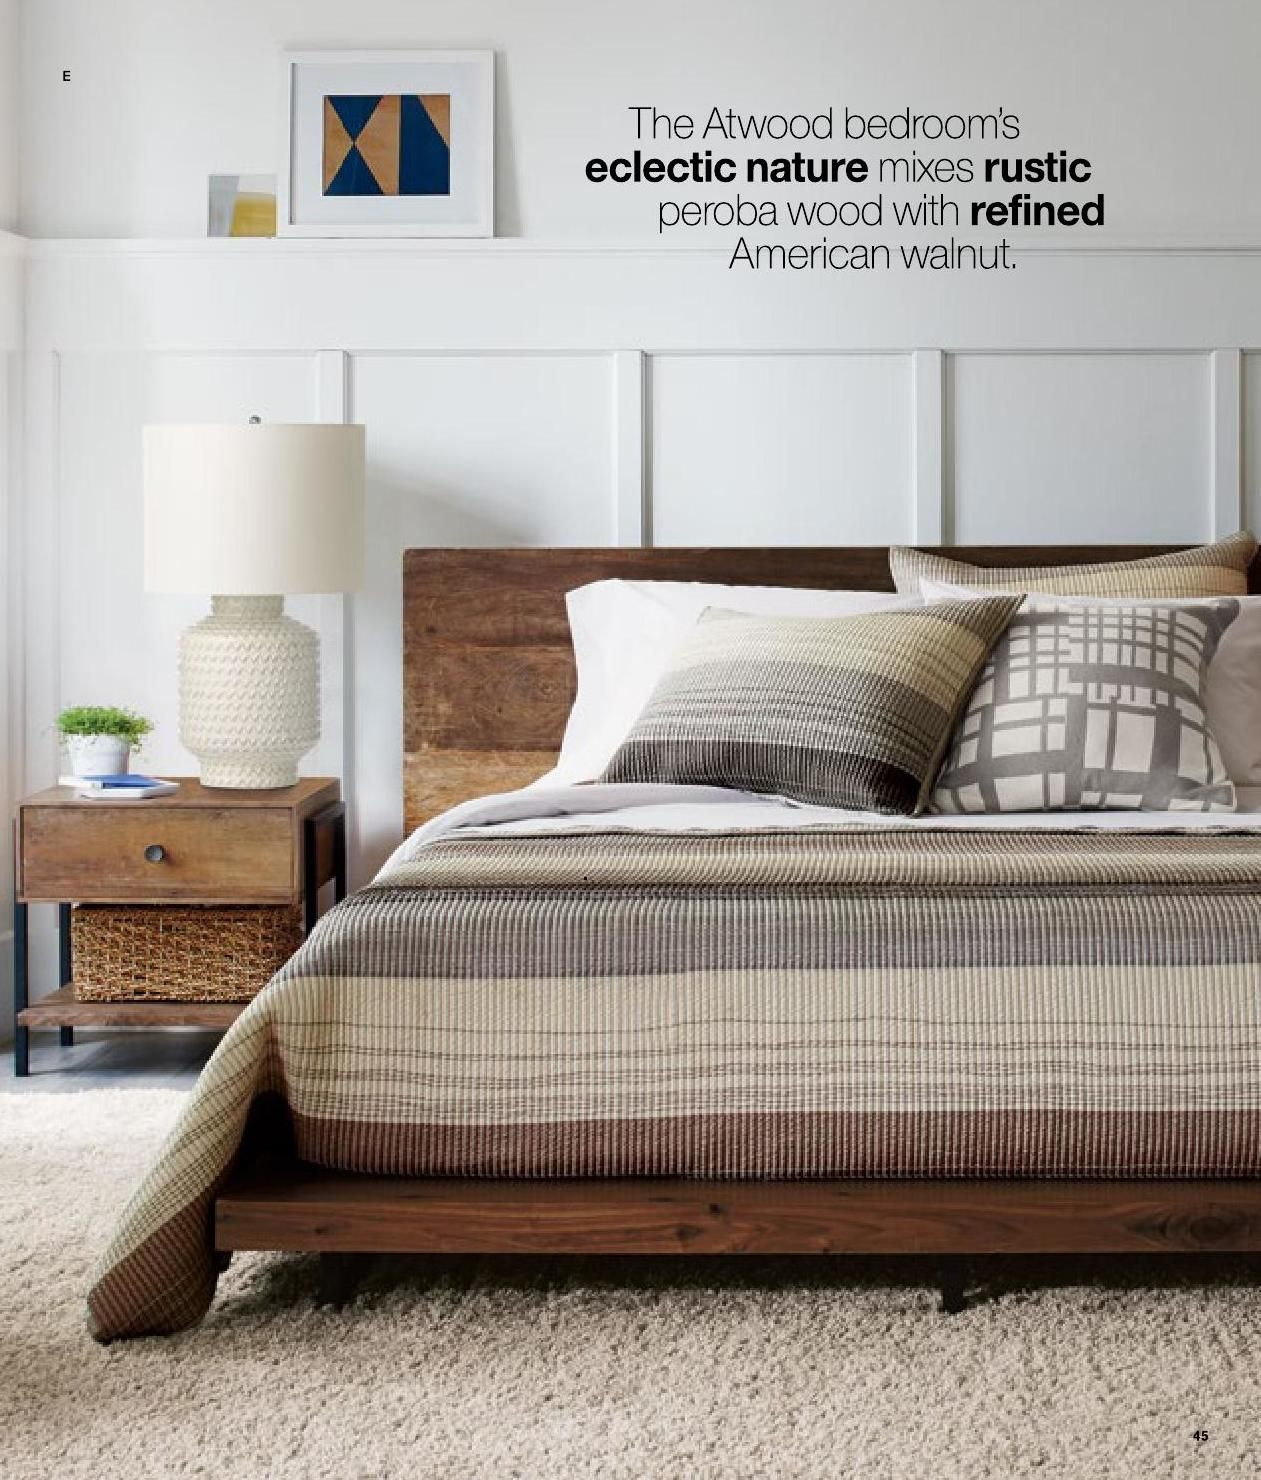 Crate and barrel furniture catalog crates barrels and - Crate barrel bedroom furniture ...